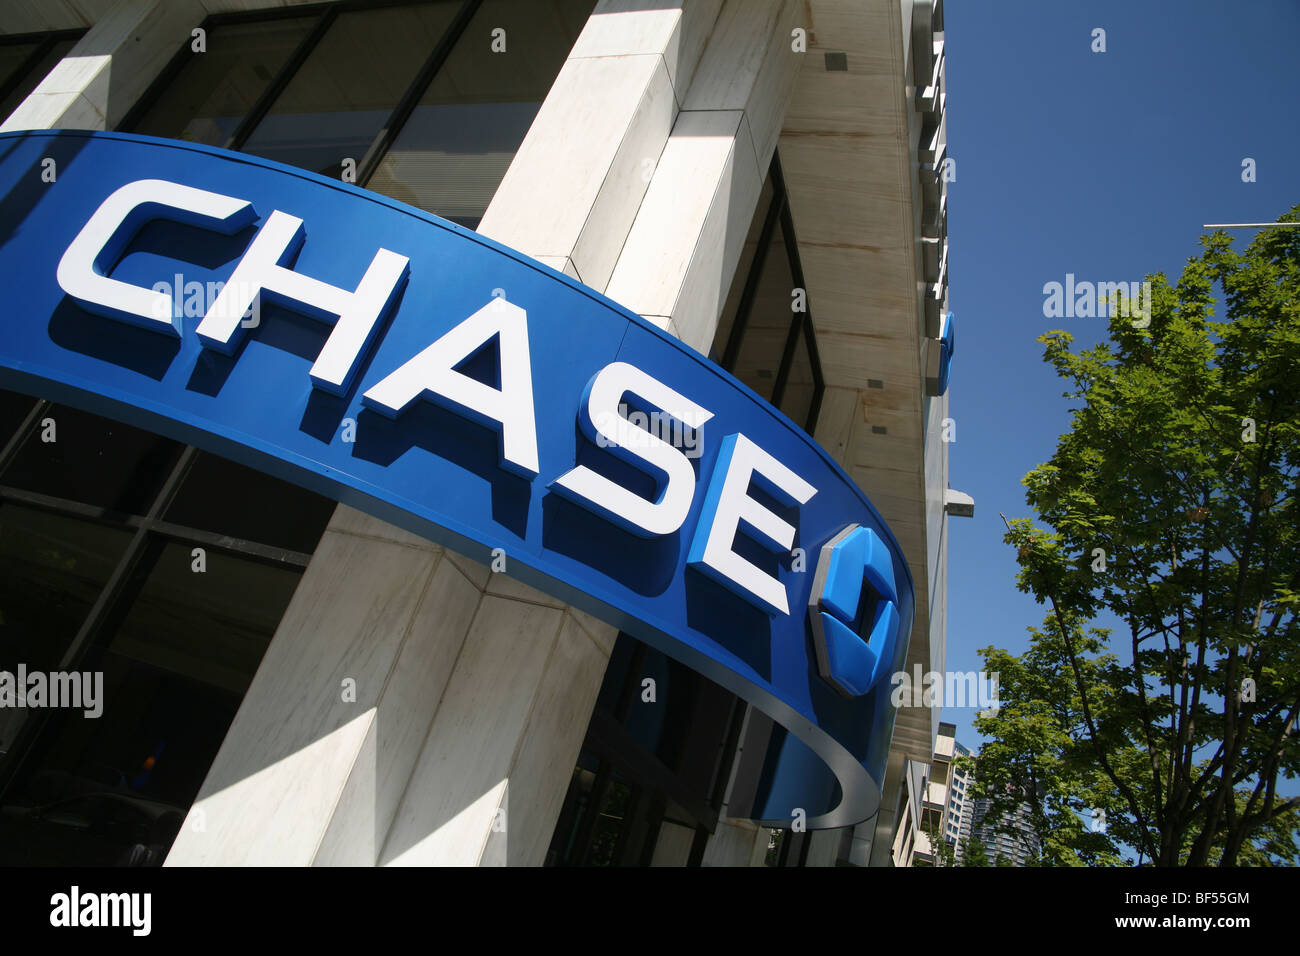 Exterior of Chase bank branch. No property release. Editorial usage only. - Stock Image